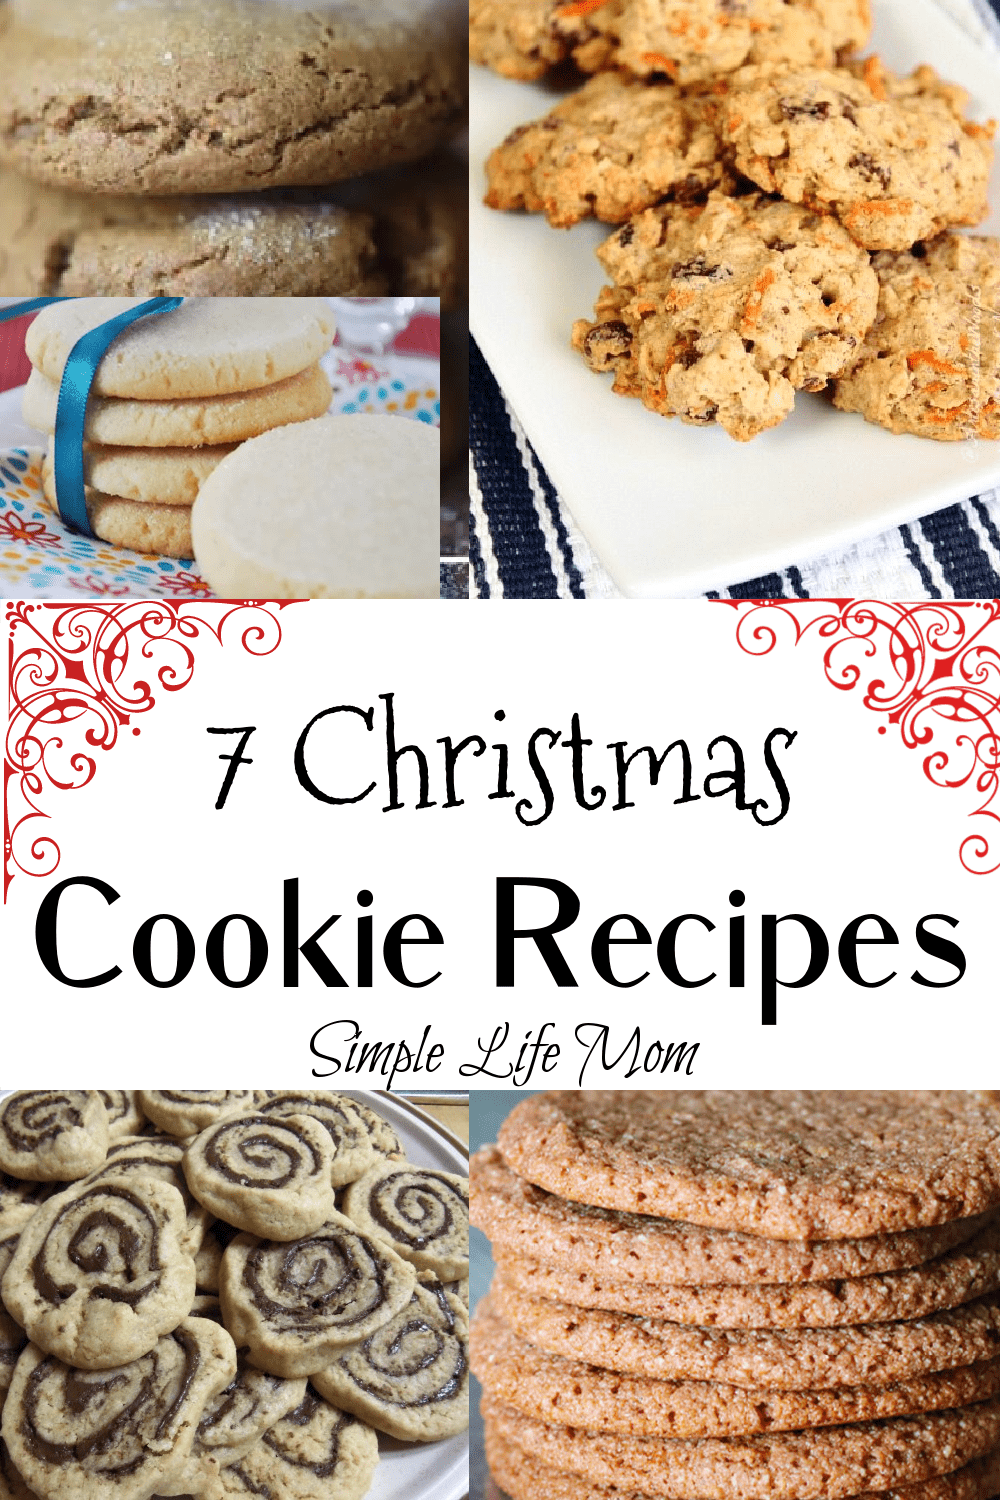 7 Christmas Cookie Recipes